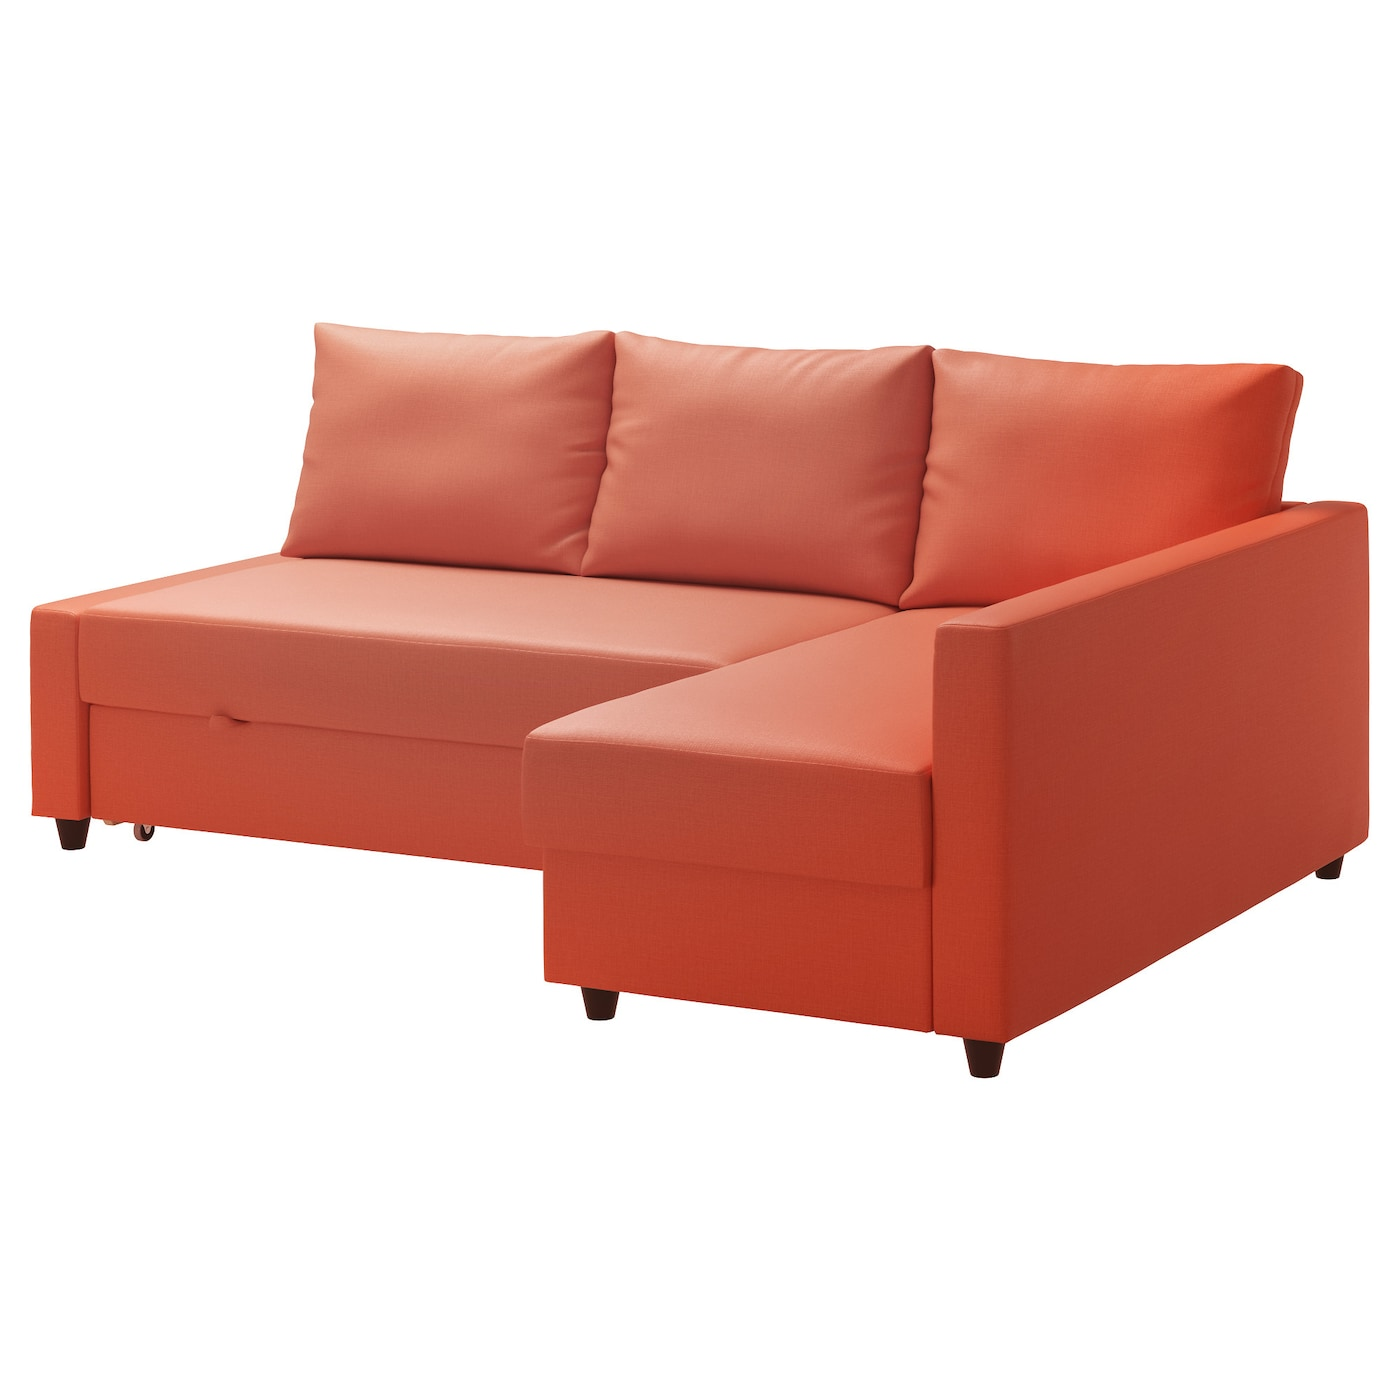 Friheten corner sofa bed with storage skiftebo dark orange for Furniture sofa bed